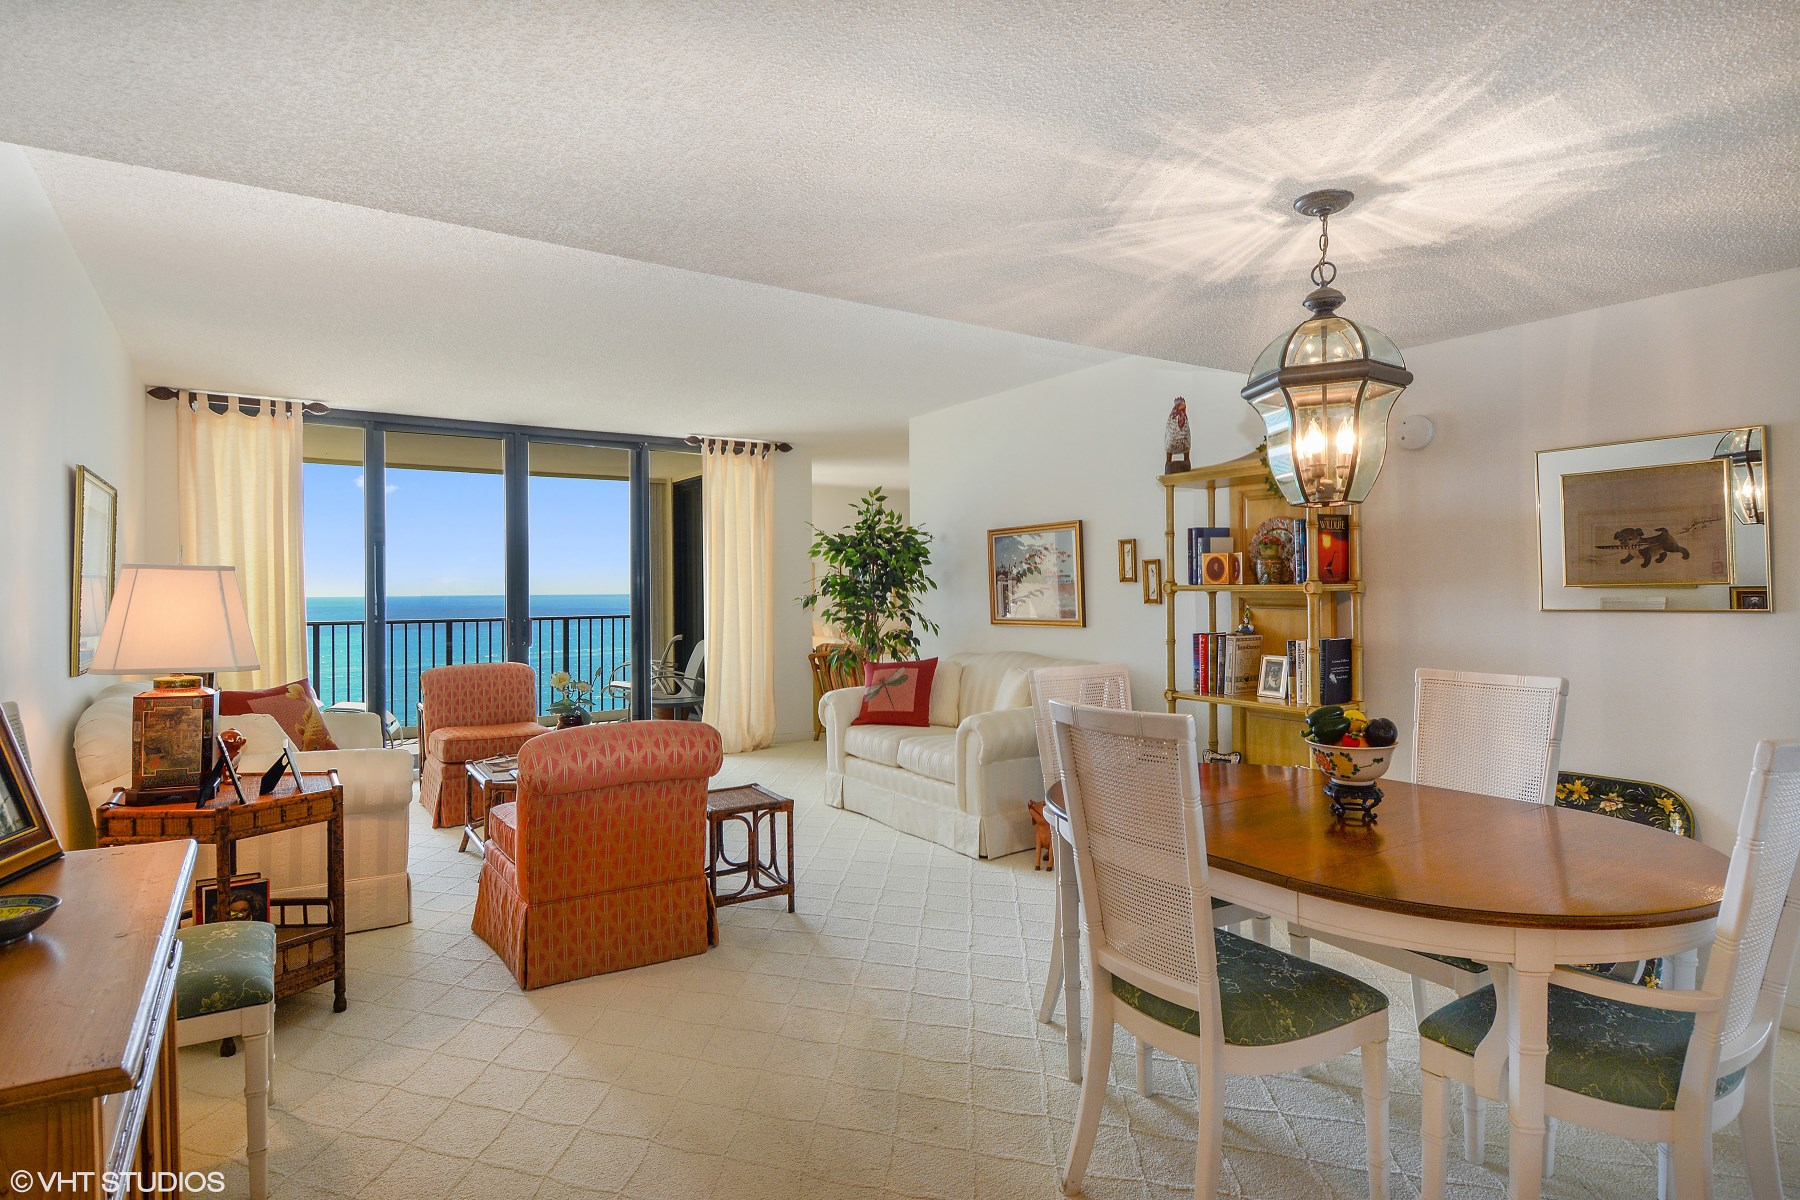 Condominium for Sale at Ocean Trail Condo Jupiter, Florida, 33477 United States